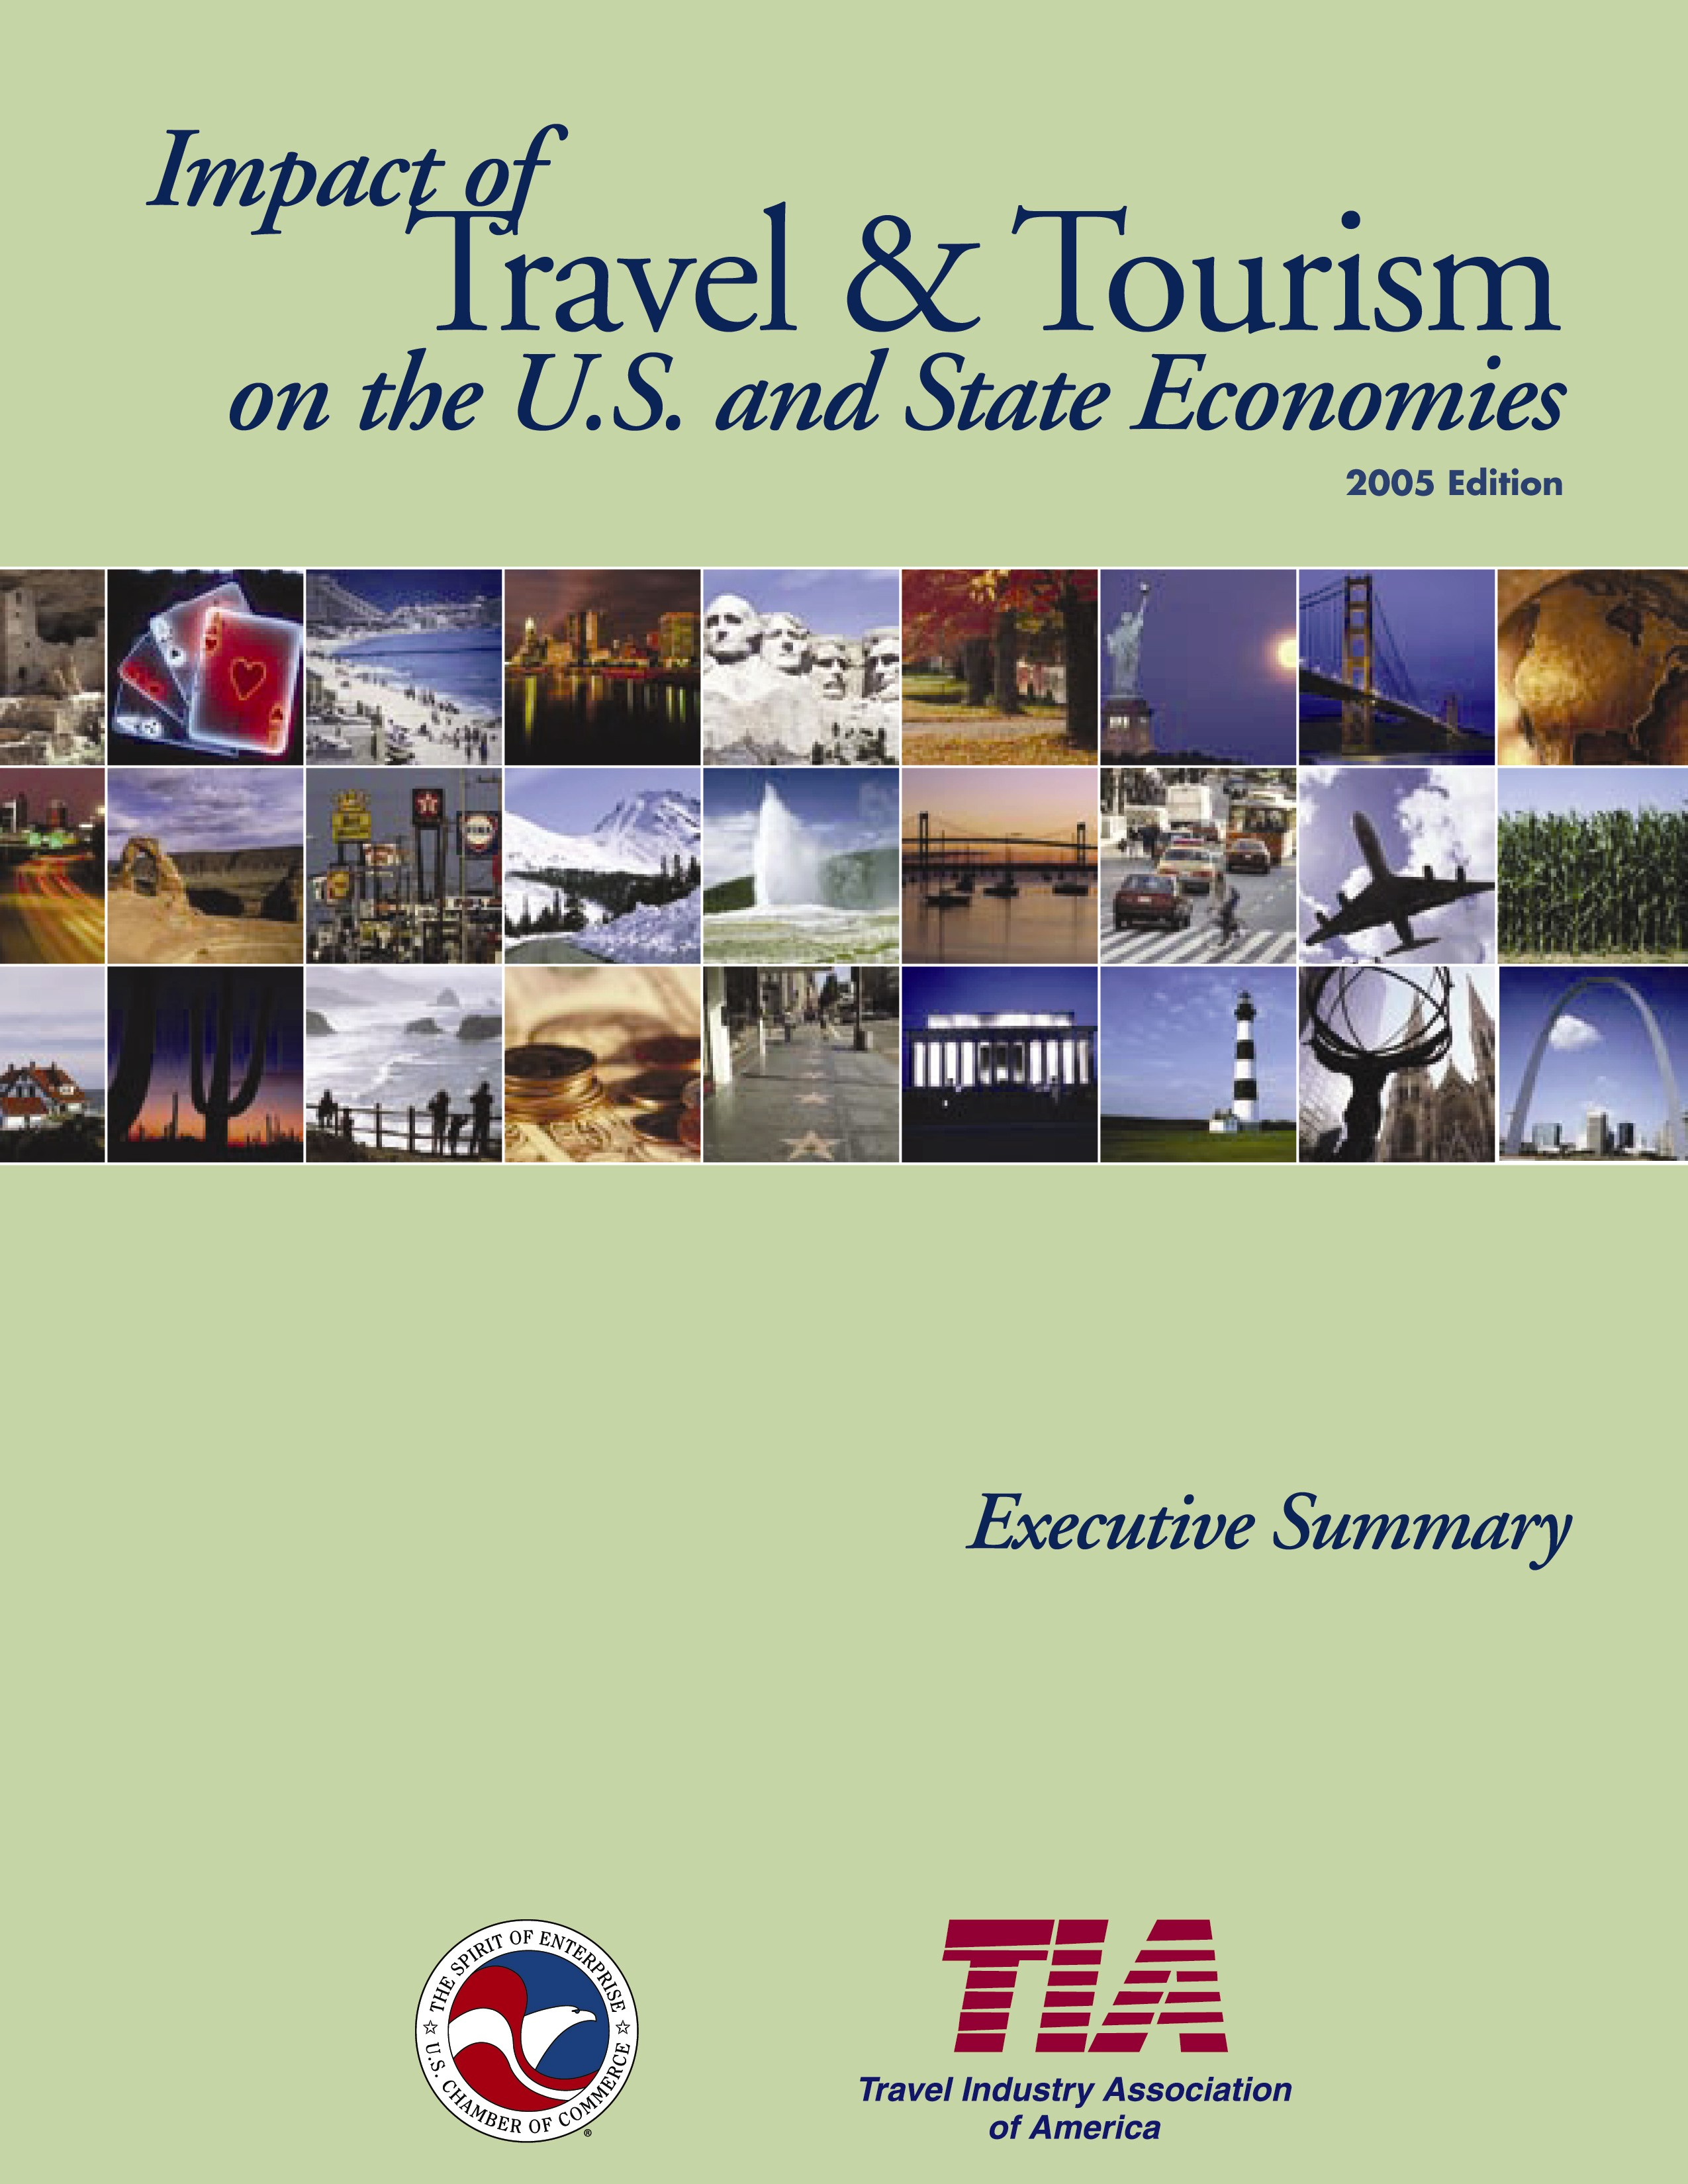 travel industry essay Hospitality and tourism industry essays how homework help us abril 9, 2018 by - no hay comentarios if the world around us comes up tomorrow as an essay im so fucked.